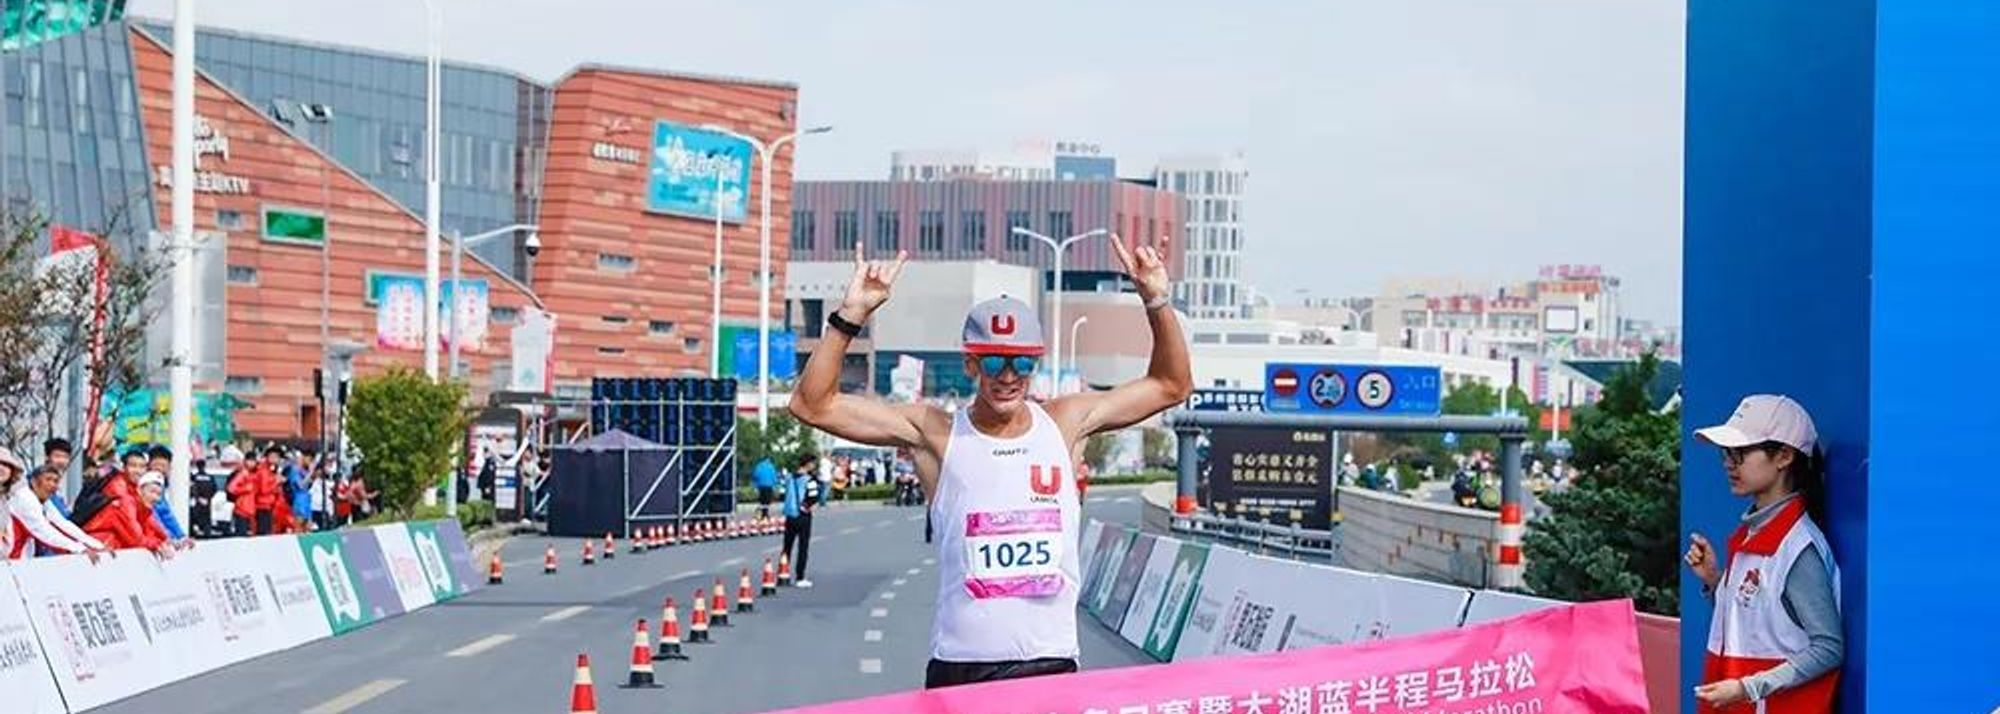 Sweden's Perseus Karlstrom confirmed his favourite status to dominate the men's race with three straight victories at the Around Taihu International Race Walking competition while Brazil's Erica de Sena rallied to take the women's individual title at the last leg of this year's IAAF Race Walking Challenge that concluded in the Chinese city of Suzhou on Tuesday (22).